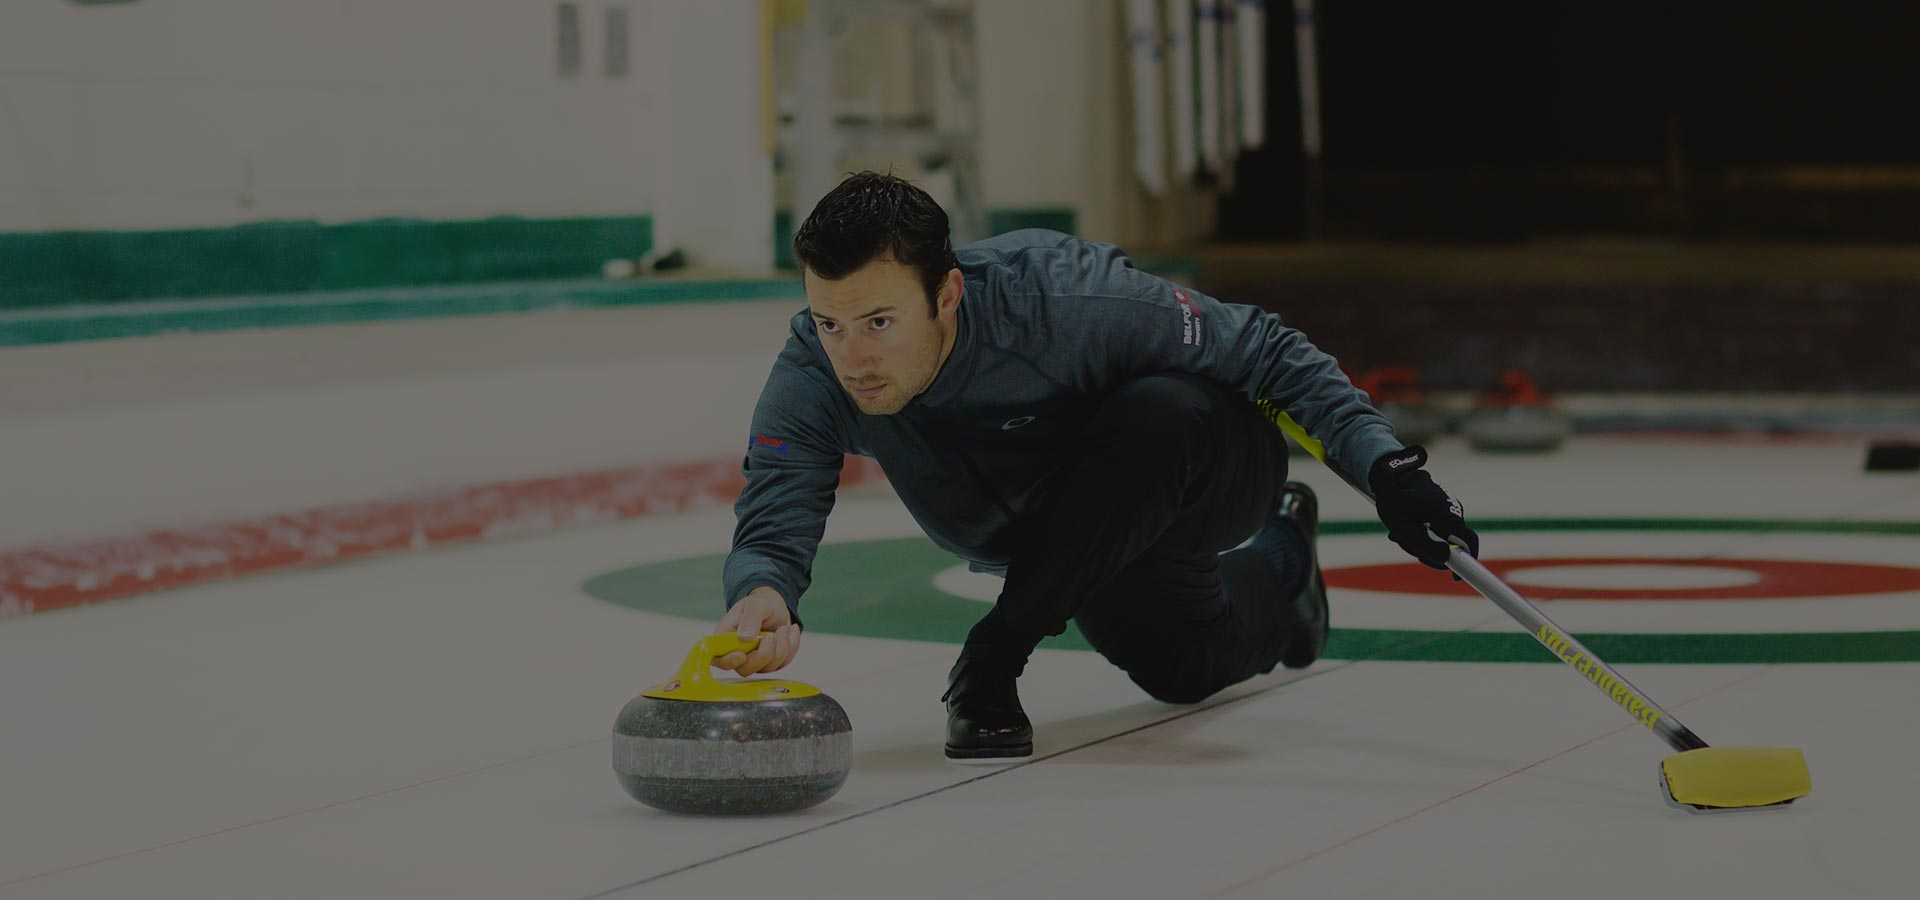 curling-lessons